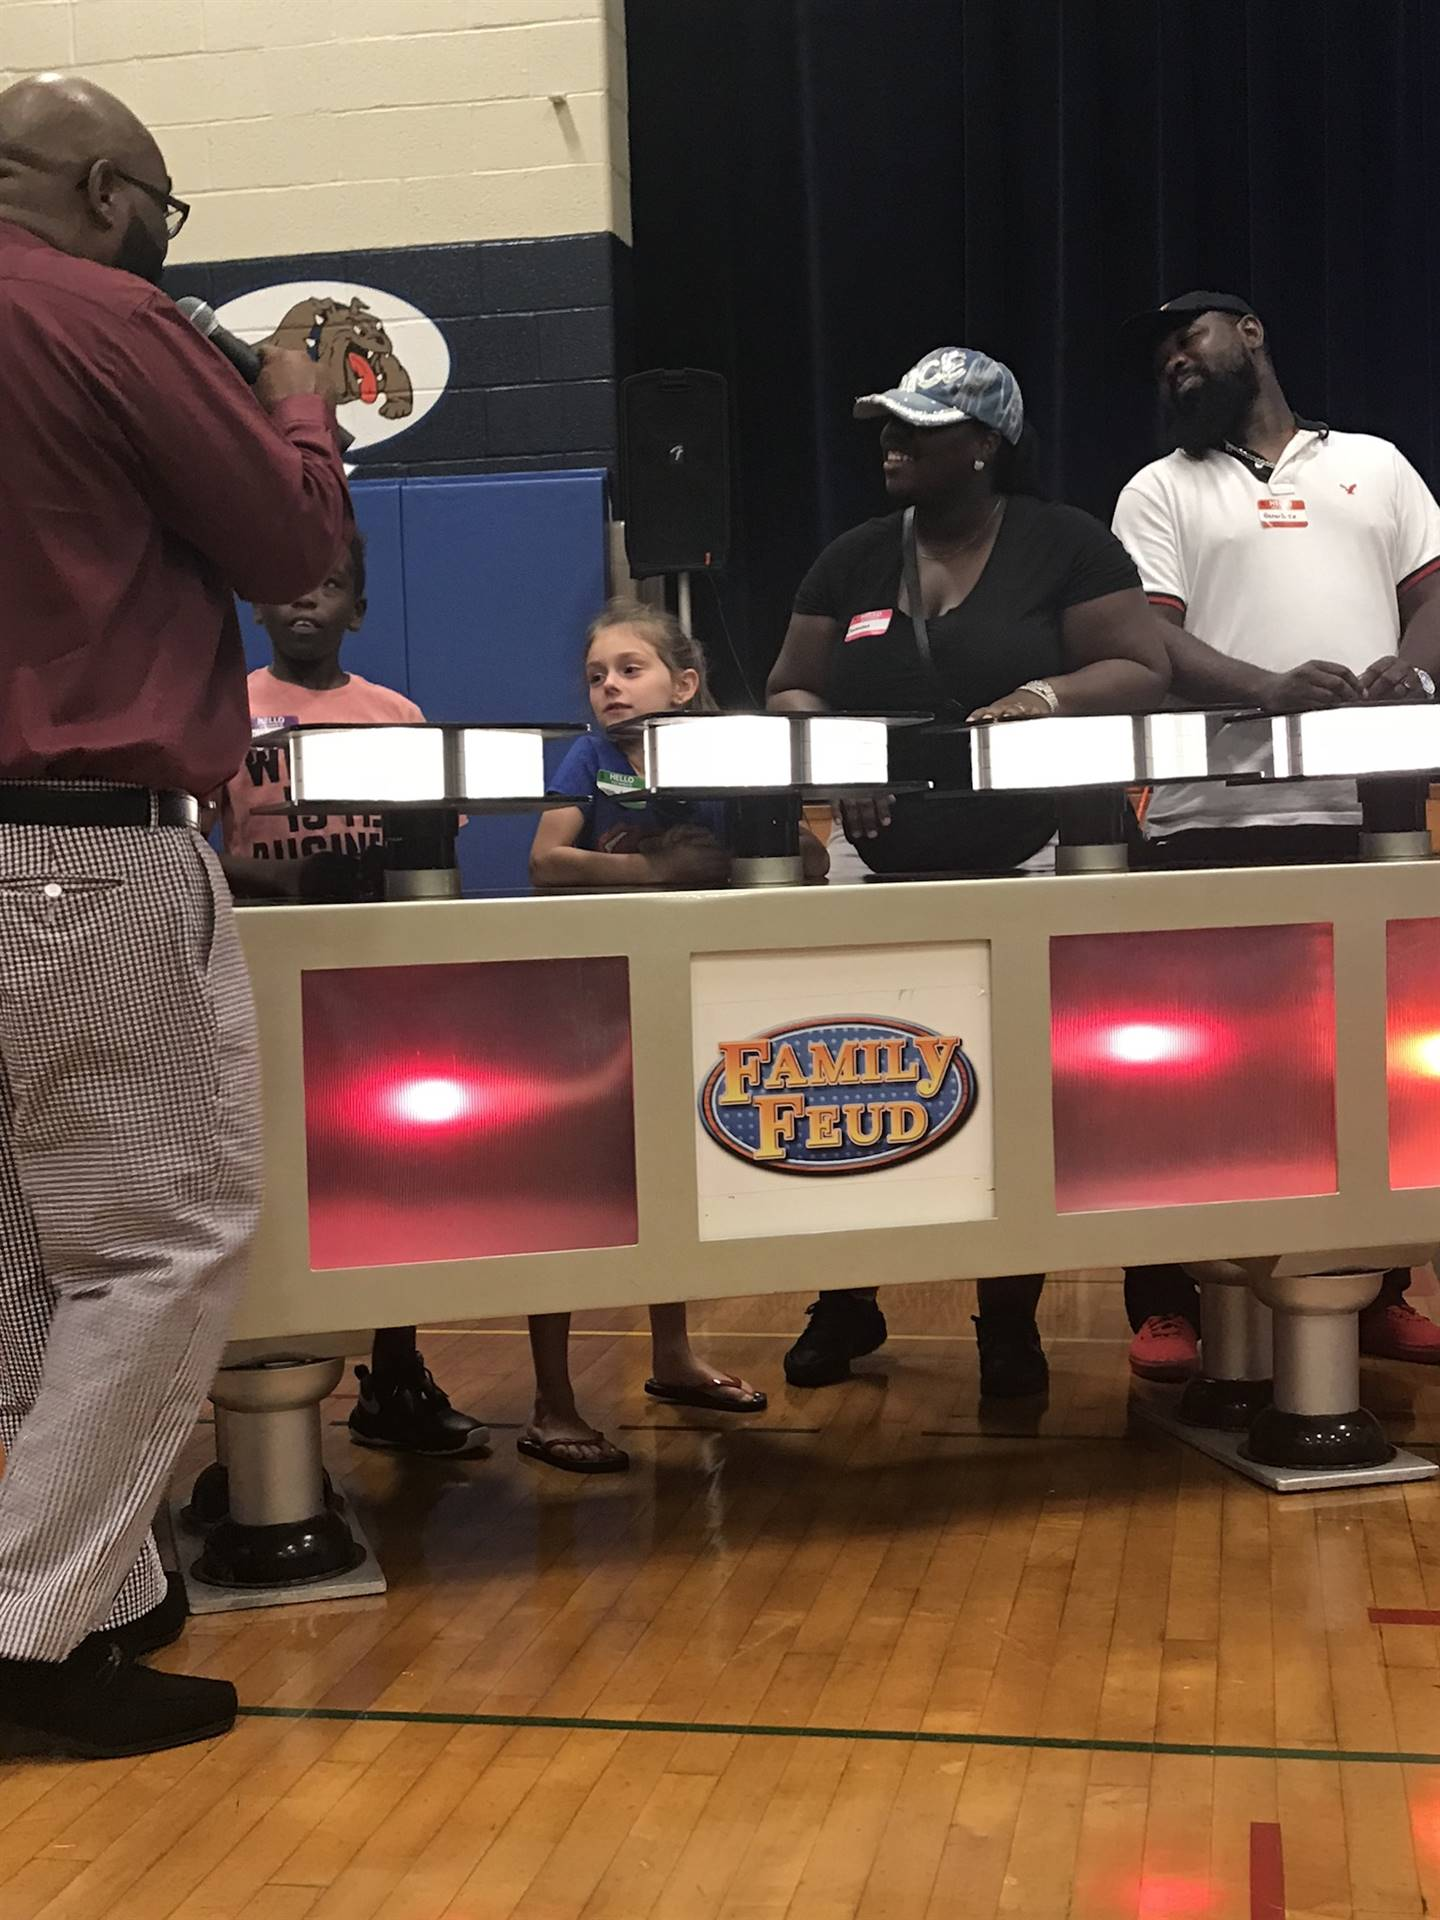 William Foster Family Feud Night